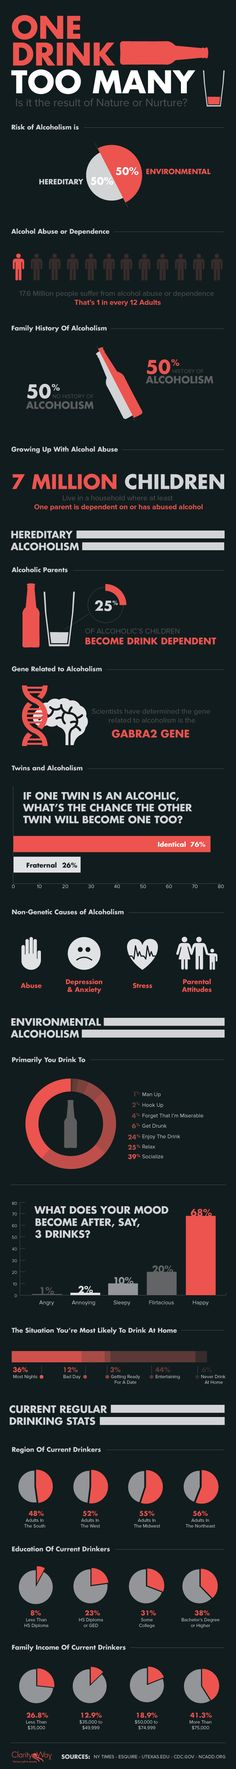 Alcoholism Nature-vs- Nuture Infographic  #Infographic